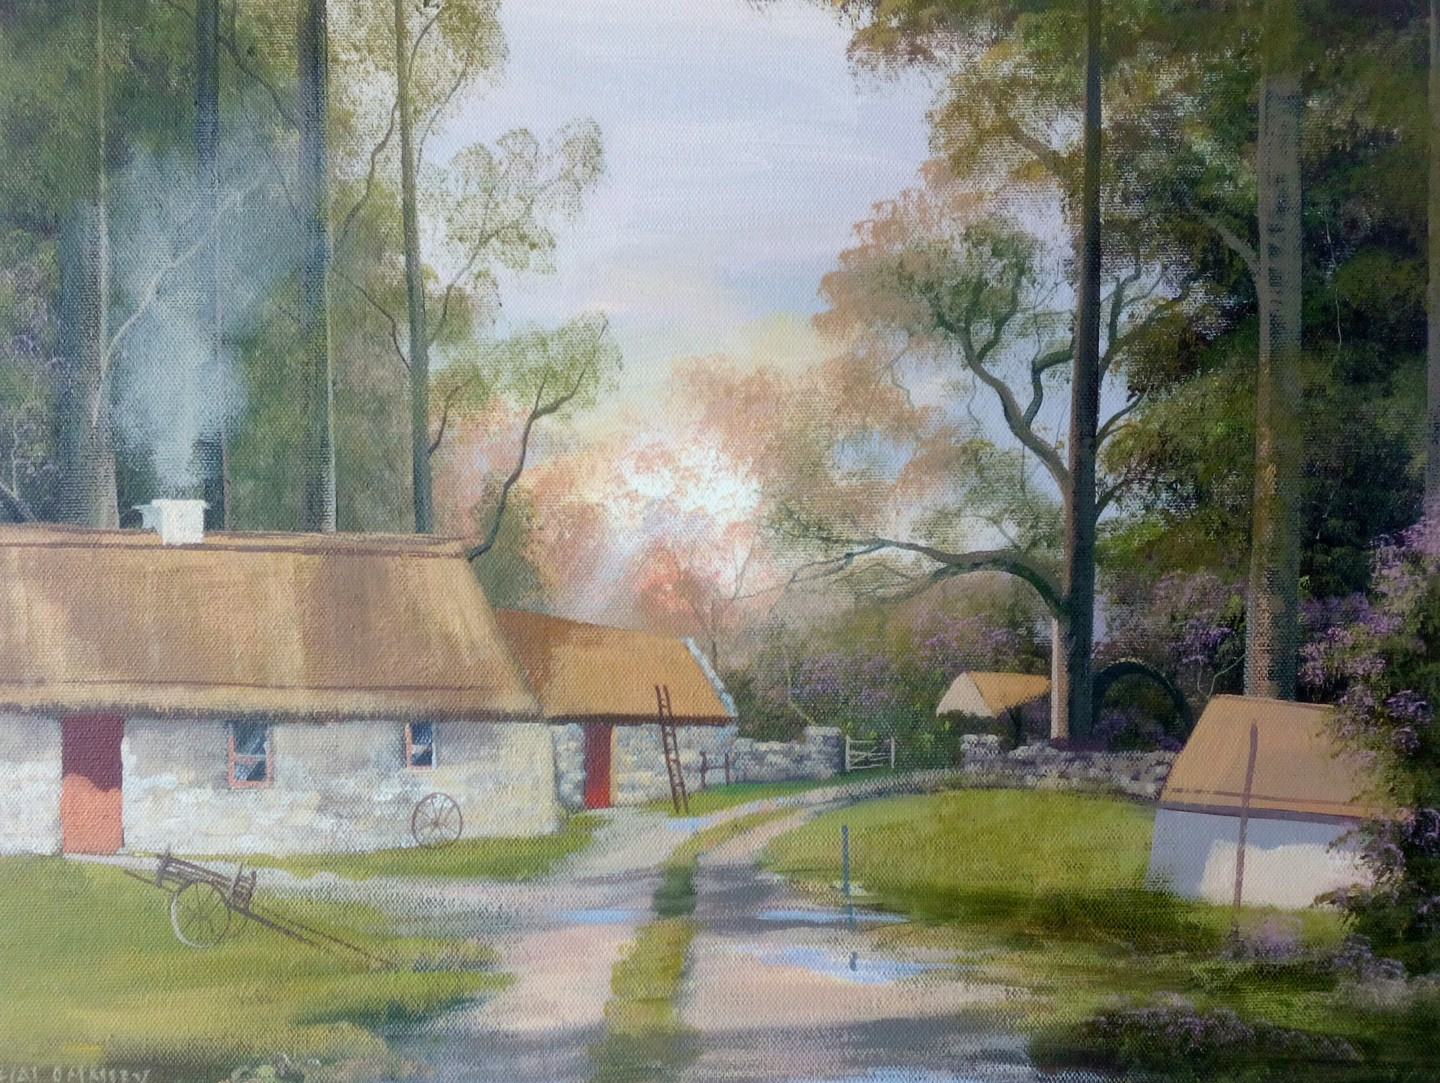 Cathal O Malley - Sunlight cottages